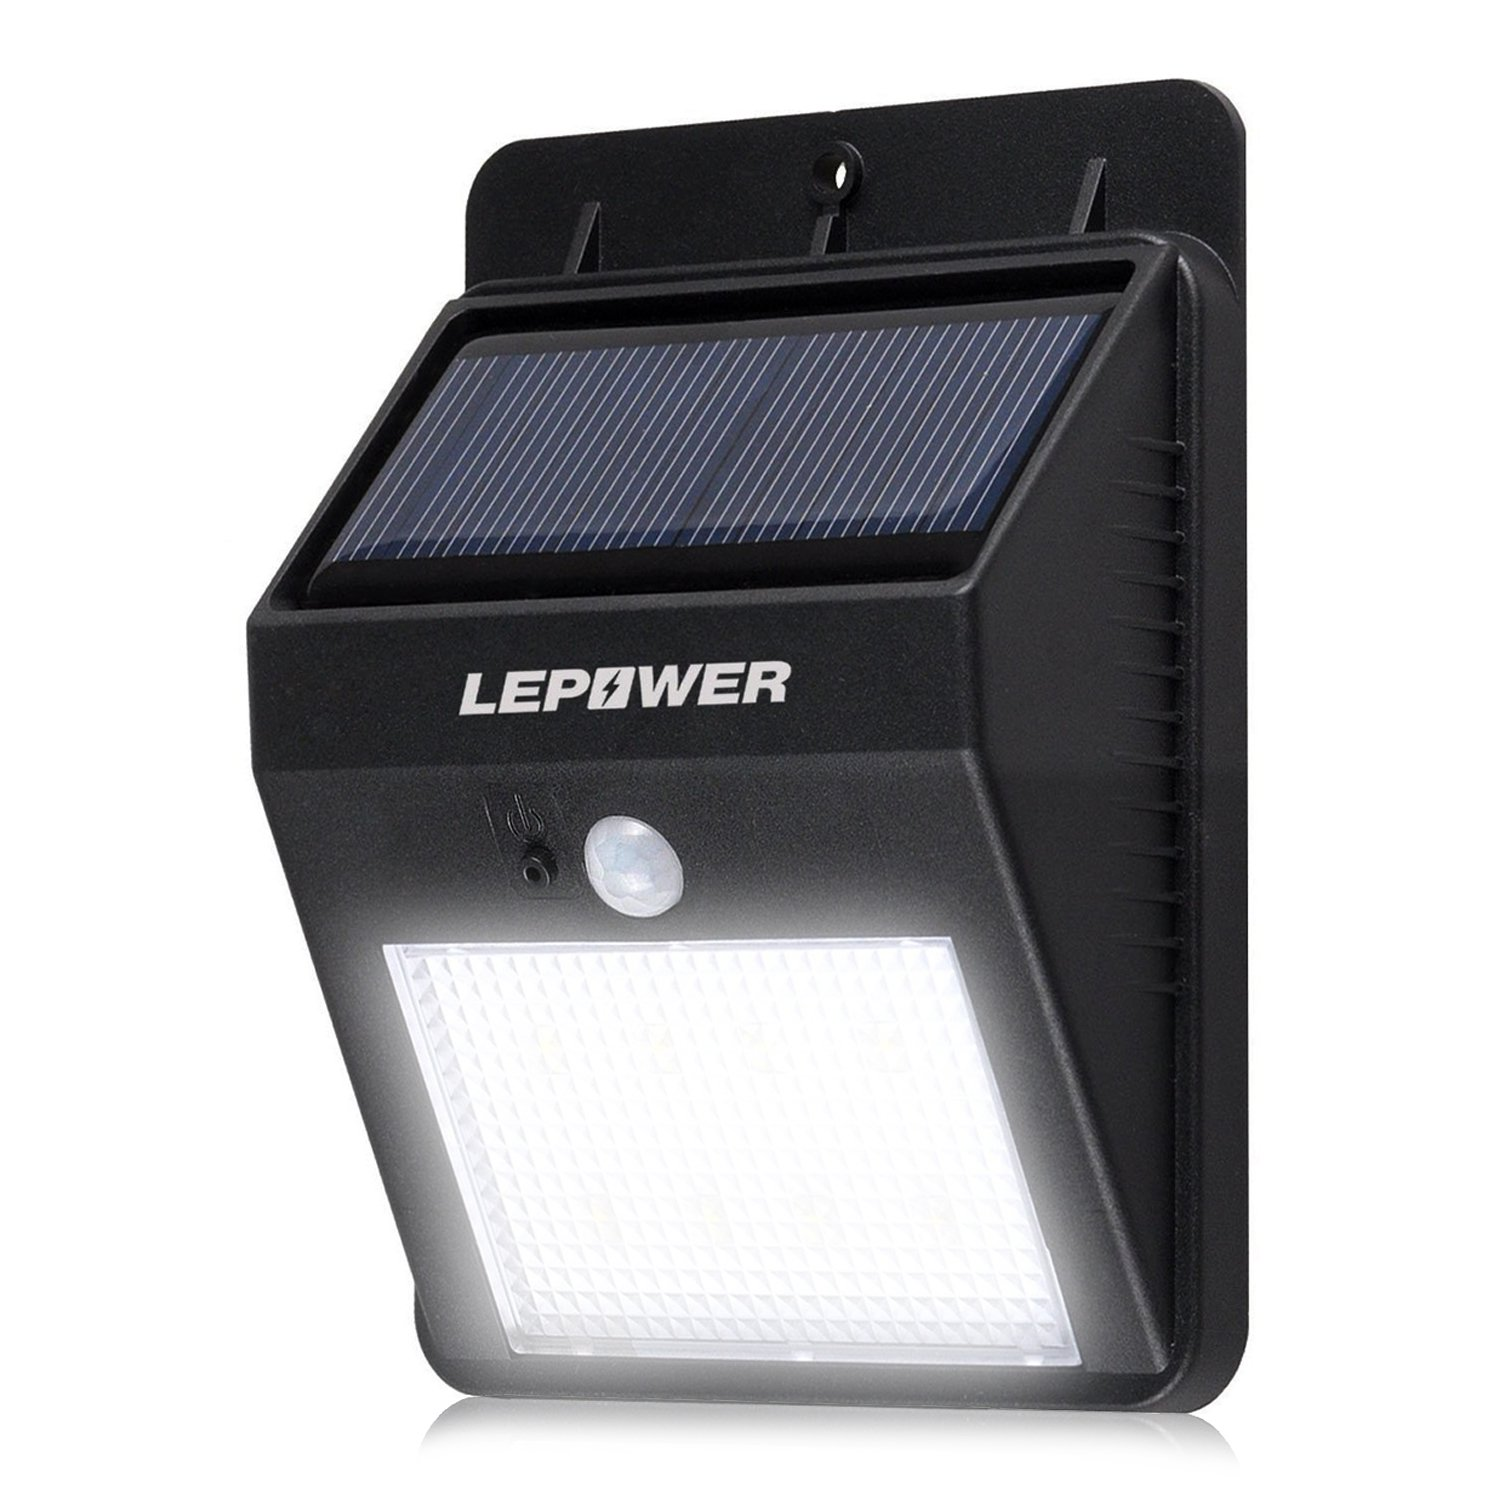 Lepower s3 motion sensor led solar lights solar wall lights lepower s3 motion sensor led solar lights solar wall lights night light outdoor concentrated and powerful led solar lights security lights 3rd aloadofball Image collections